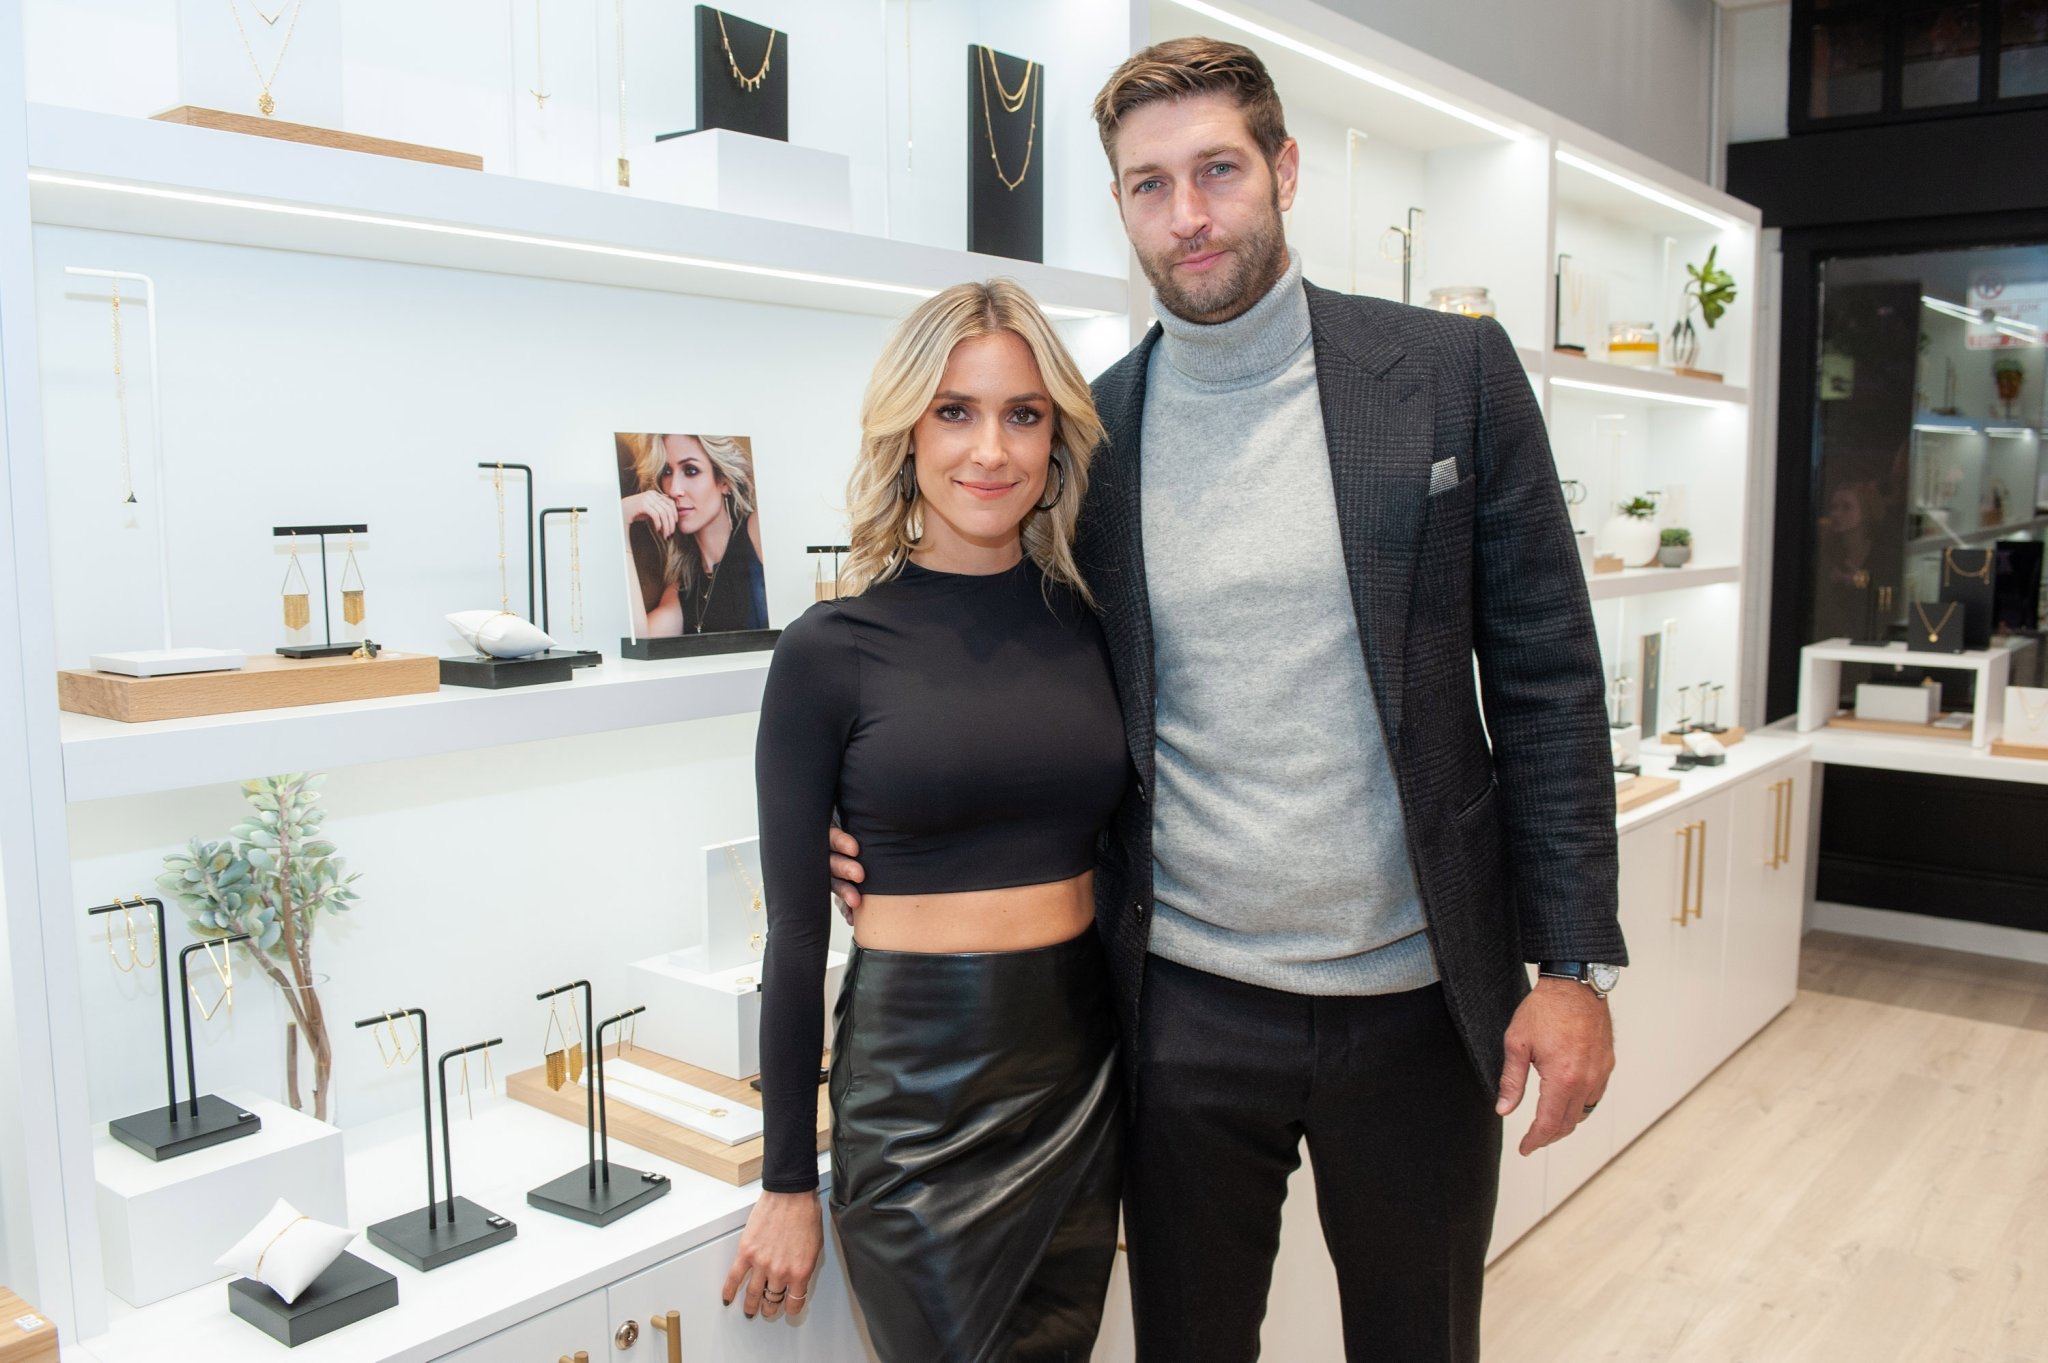 Jay Cutler Is Reportedly 'Not Happy' His Ex-Wife Kristin Cavallari Was Spotted Making Out With Comedian Jeff Dye - BroBible